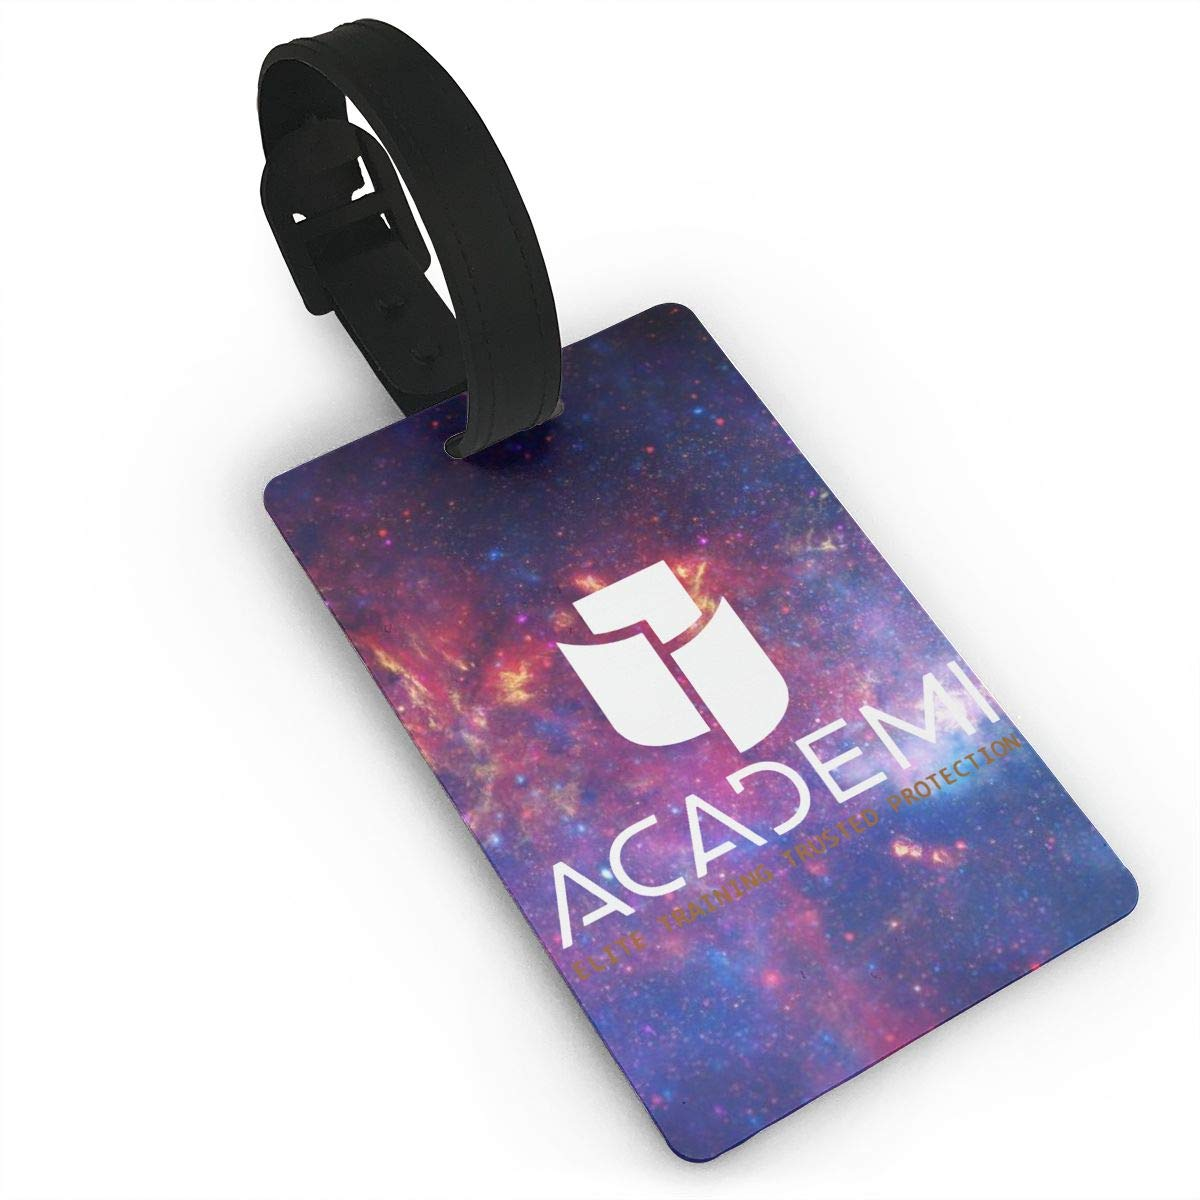 Academi Elite Training Trusted Protection Travel Accessory Luggage ID Tag Suitcase Carry-on Baggage